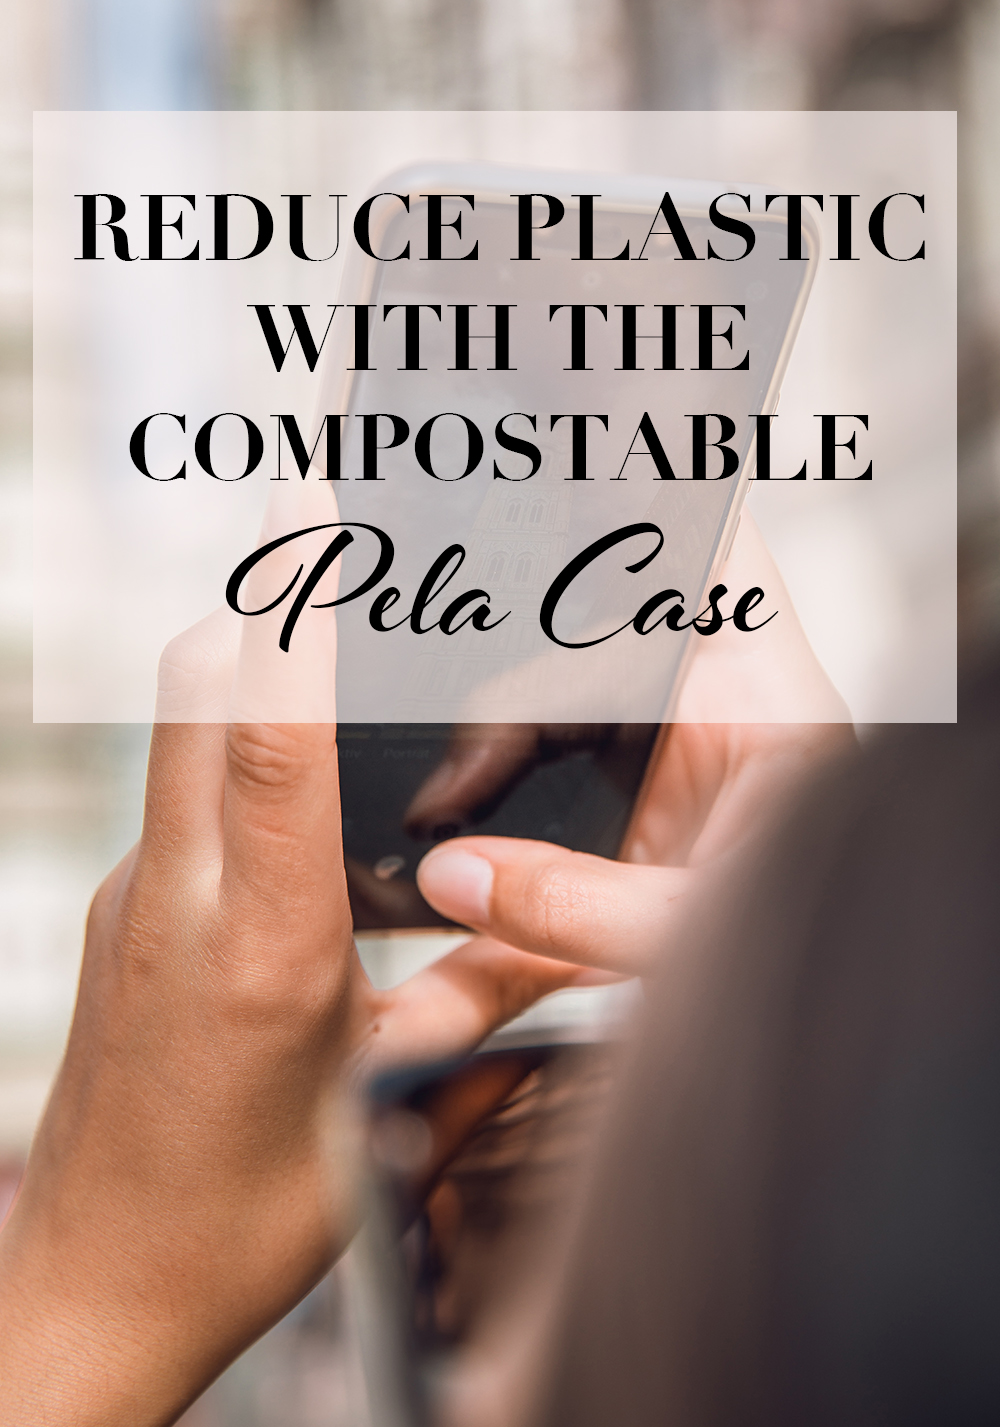 reduce plastic with the compostable pela case